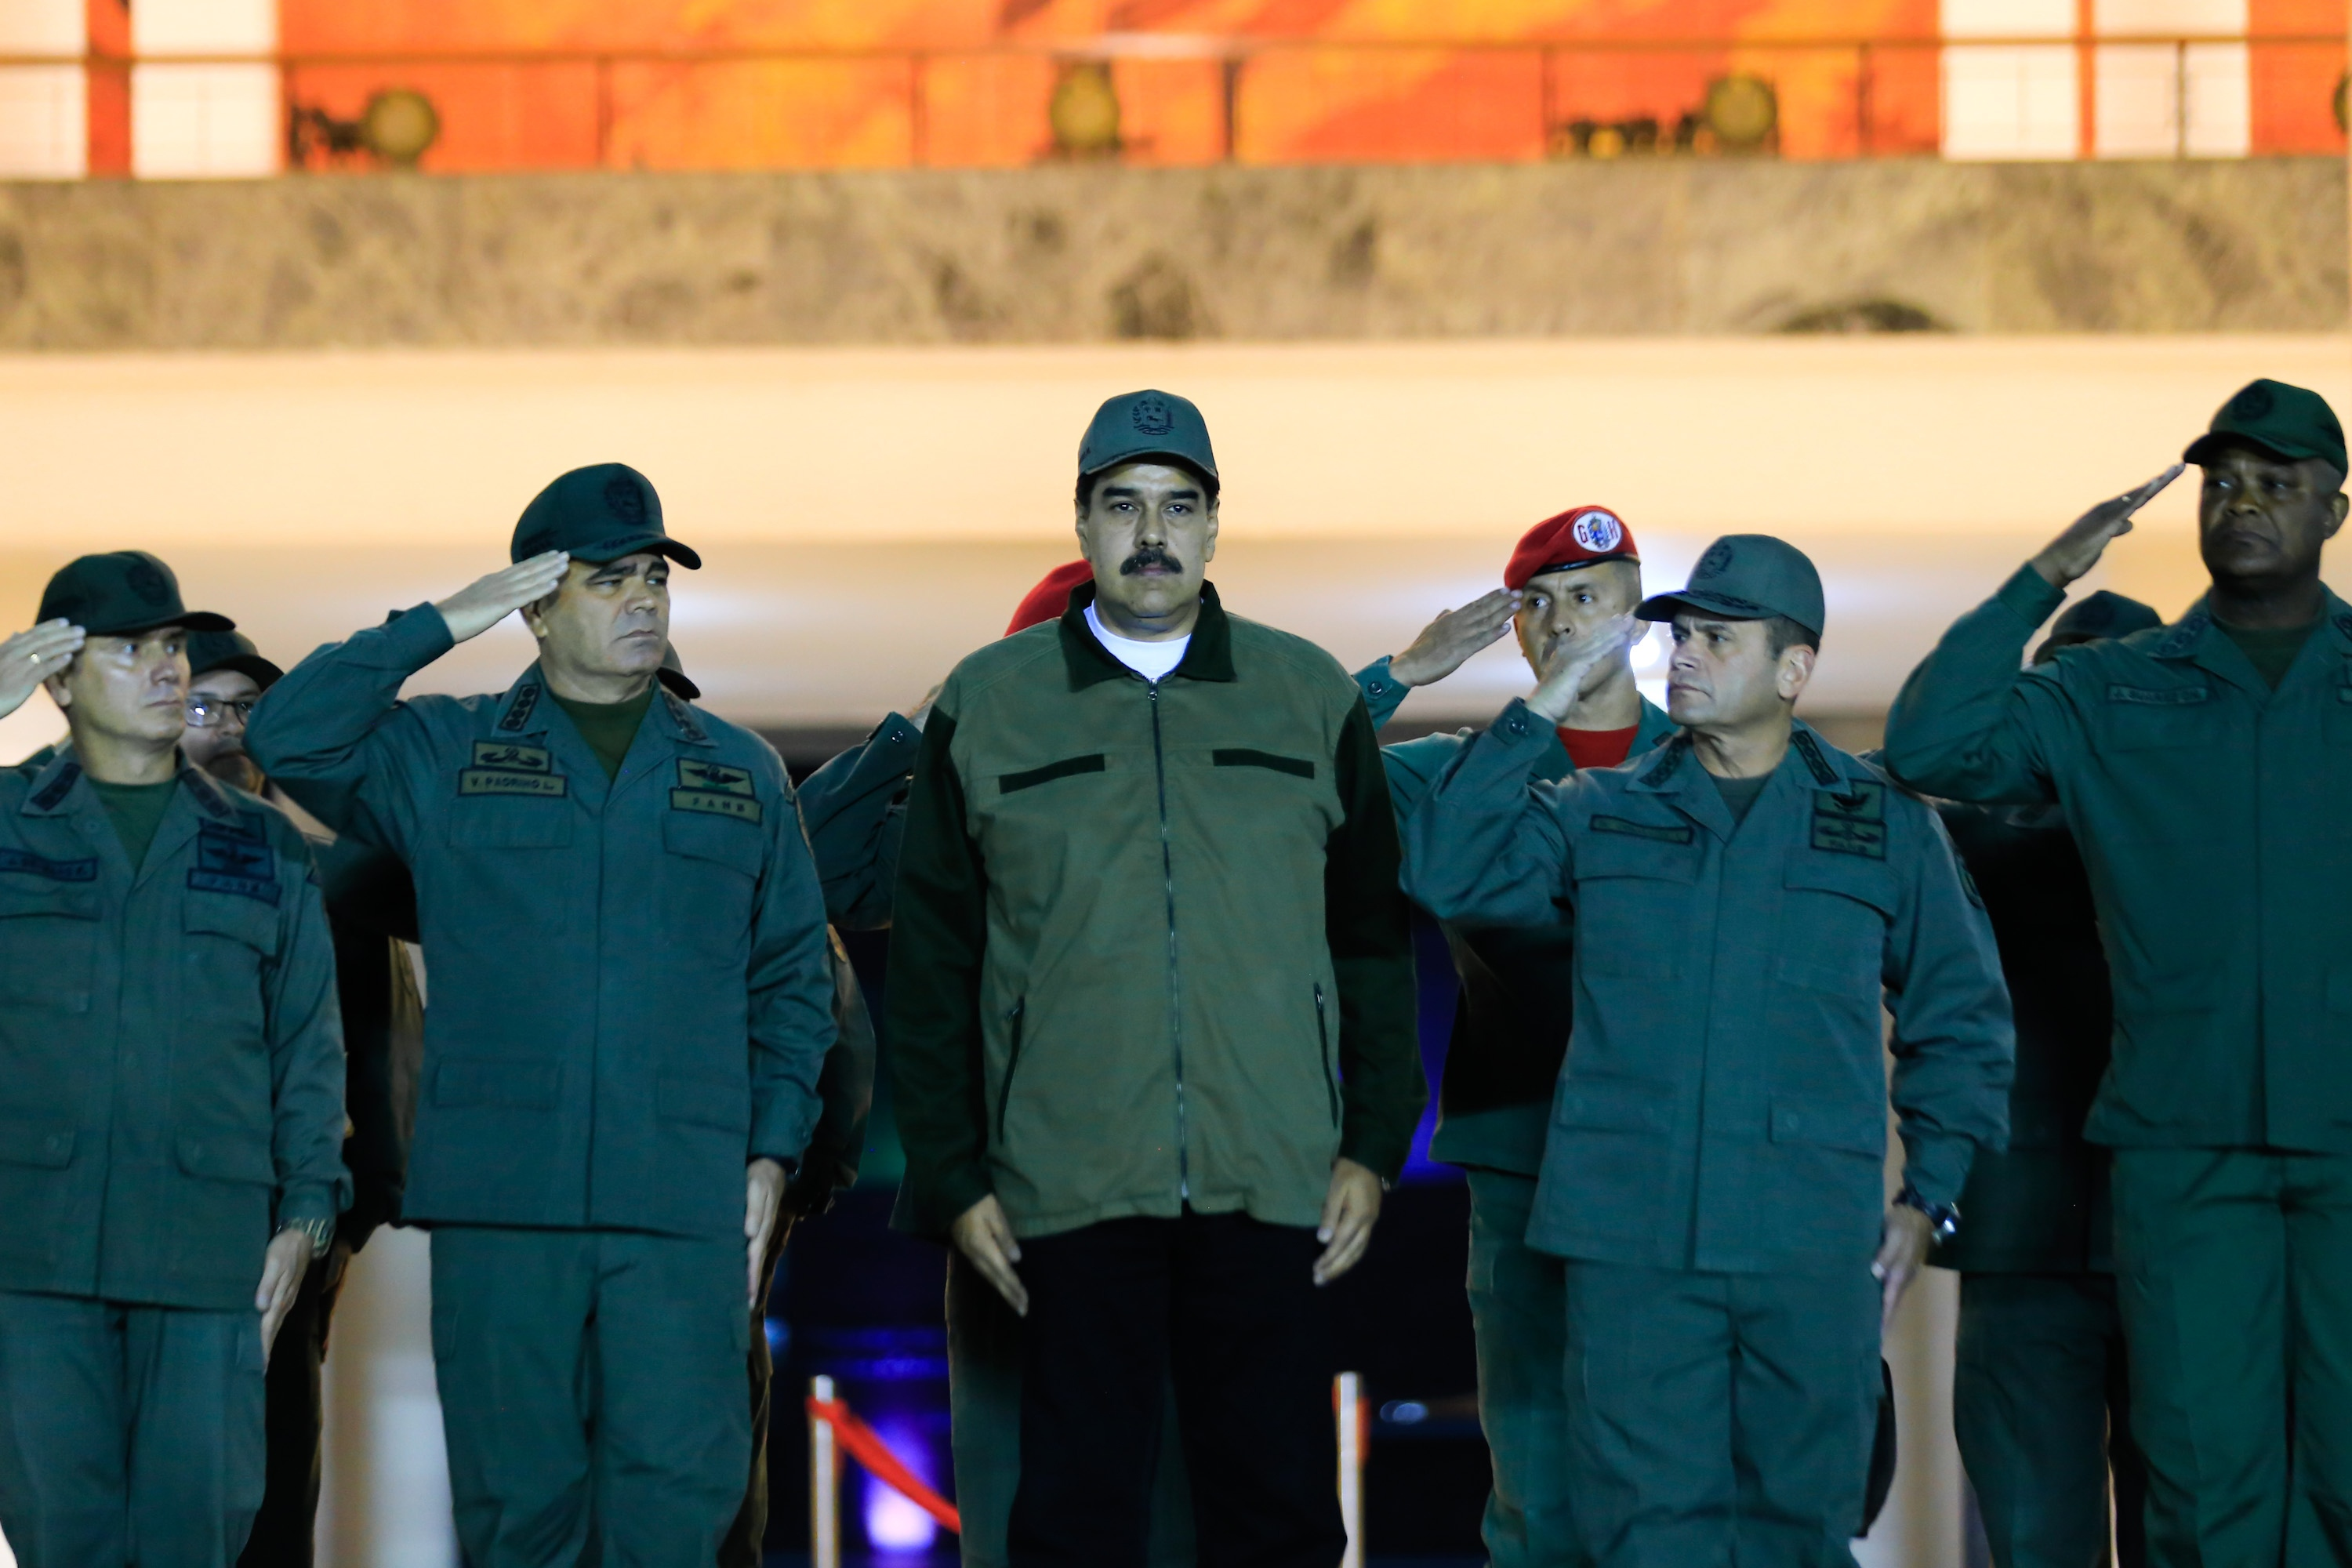 """This handout picture released by Miraflores Palace press office shows Venezuela's President Nicolas Maduro (C) receiving the military salute from loyal troops at the """"Fuerte Tiuna"""" in Caracas, Venezuela on May 2, 2019. - Maduro attends a """"march to reaffirm the absolute loyalty"""" of the Venezuelan Army, as opposition leader Juan Guaido continues making calls to oust his government. (Photo by HO / Presidency/JHONN ZERPA / AFP)"""